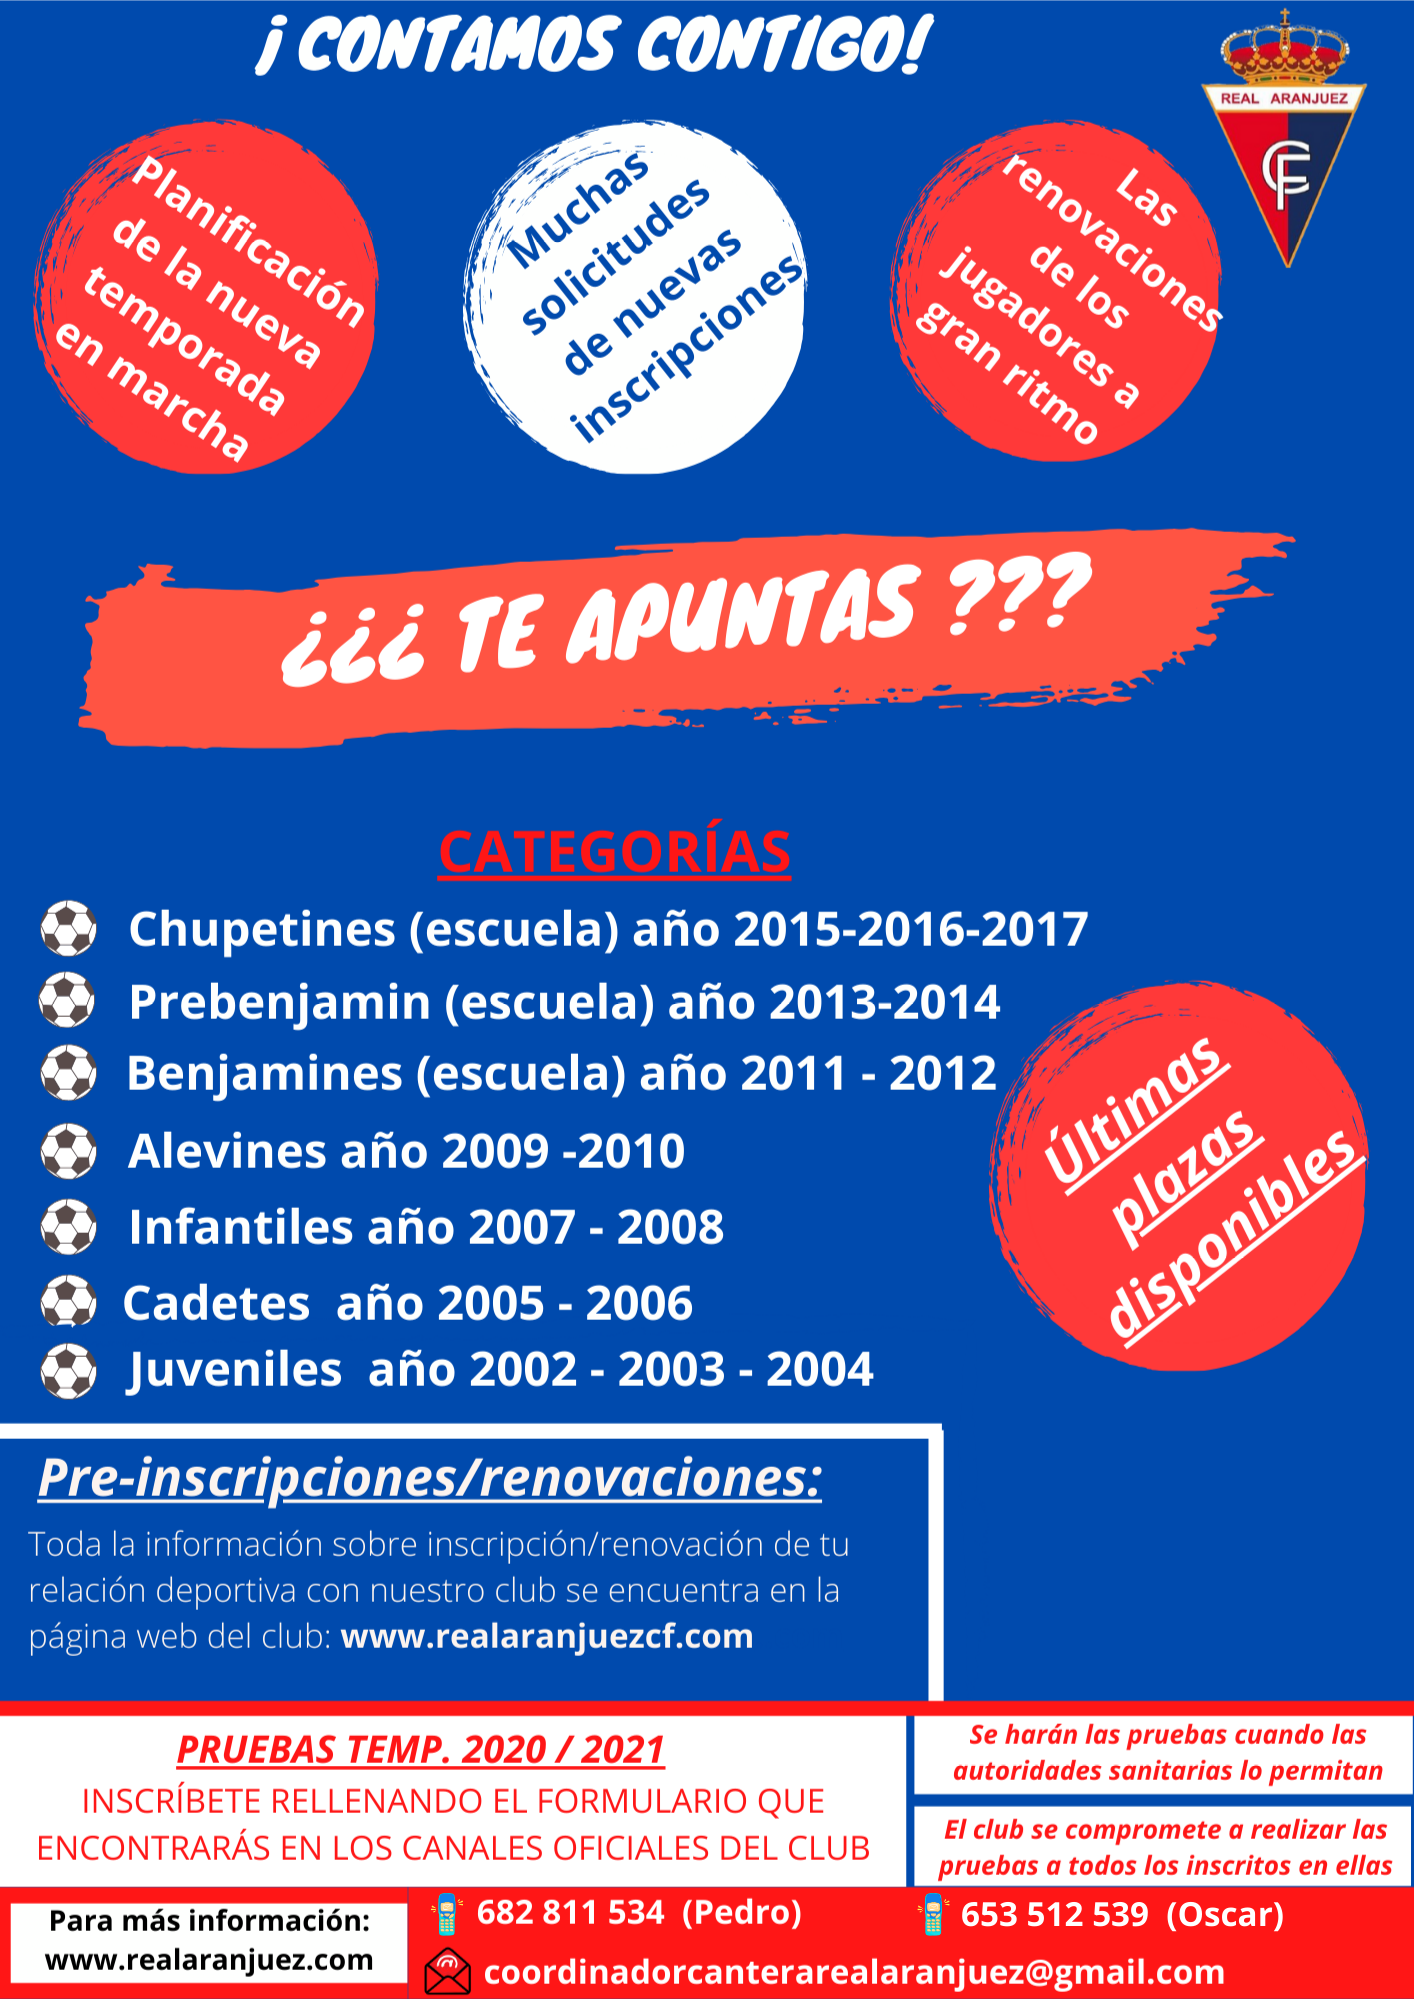 CARTEL DE CANTERA RECORDATORIO